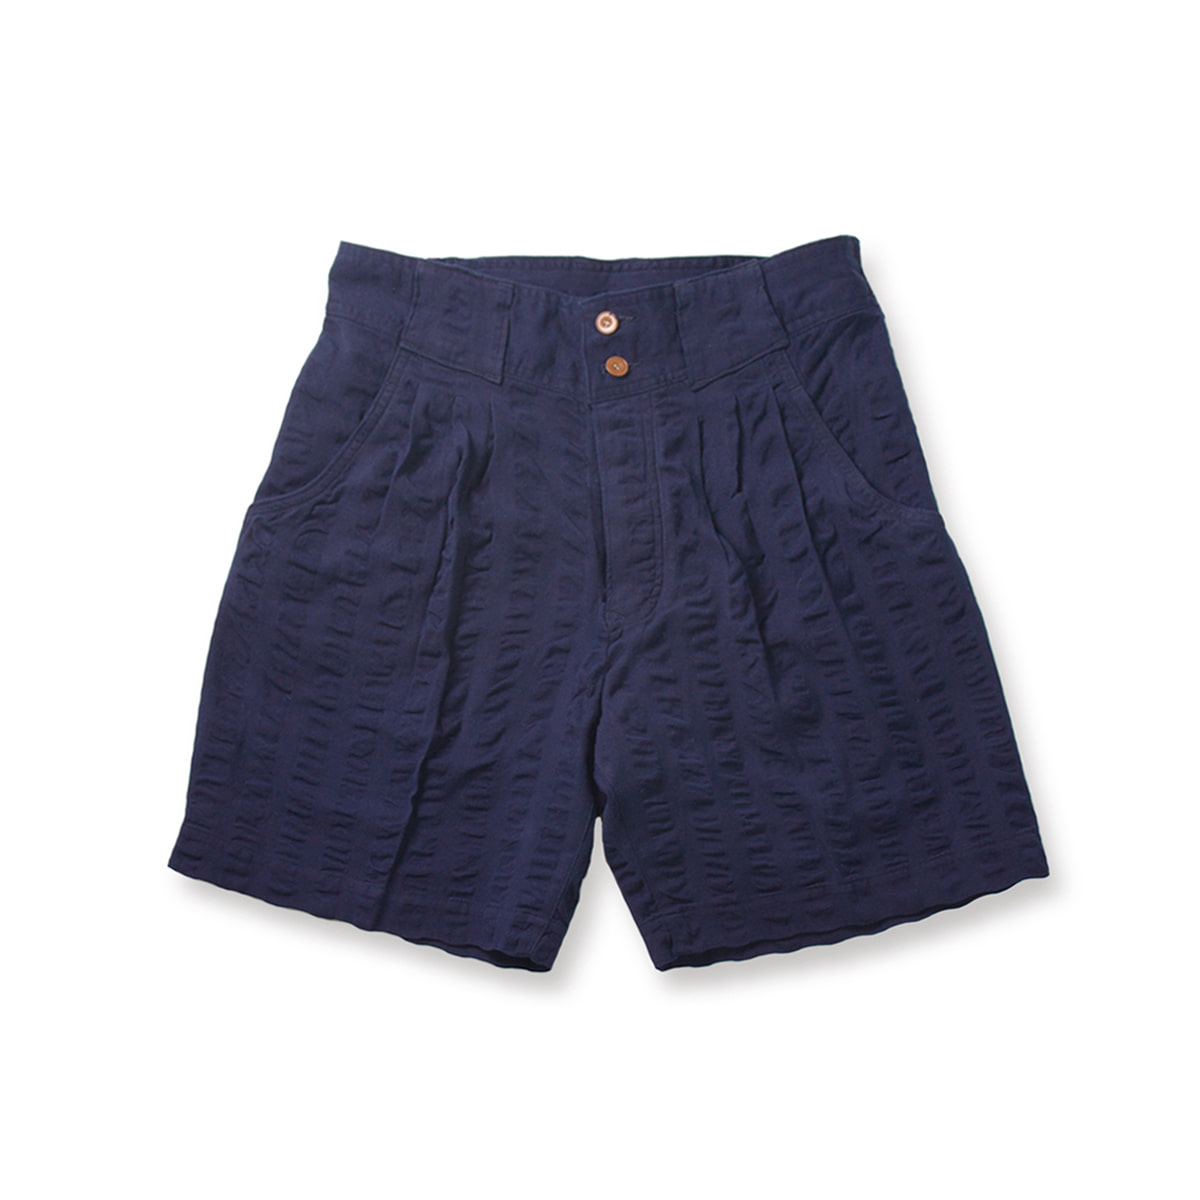 [HAVERSACK] OXFORD SEERSUCKER SHORTS 'NAVY'